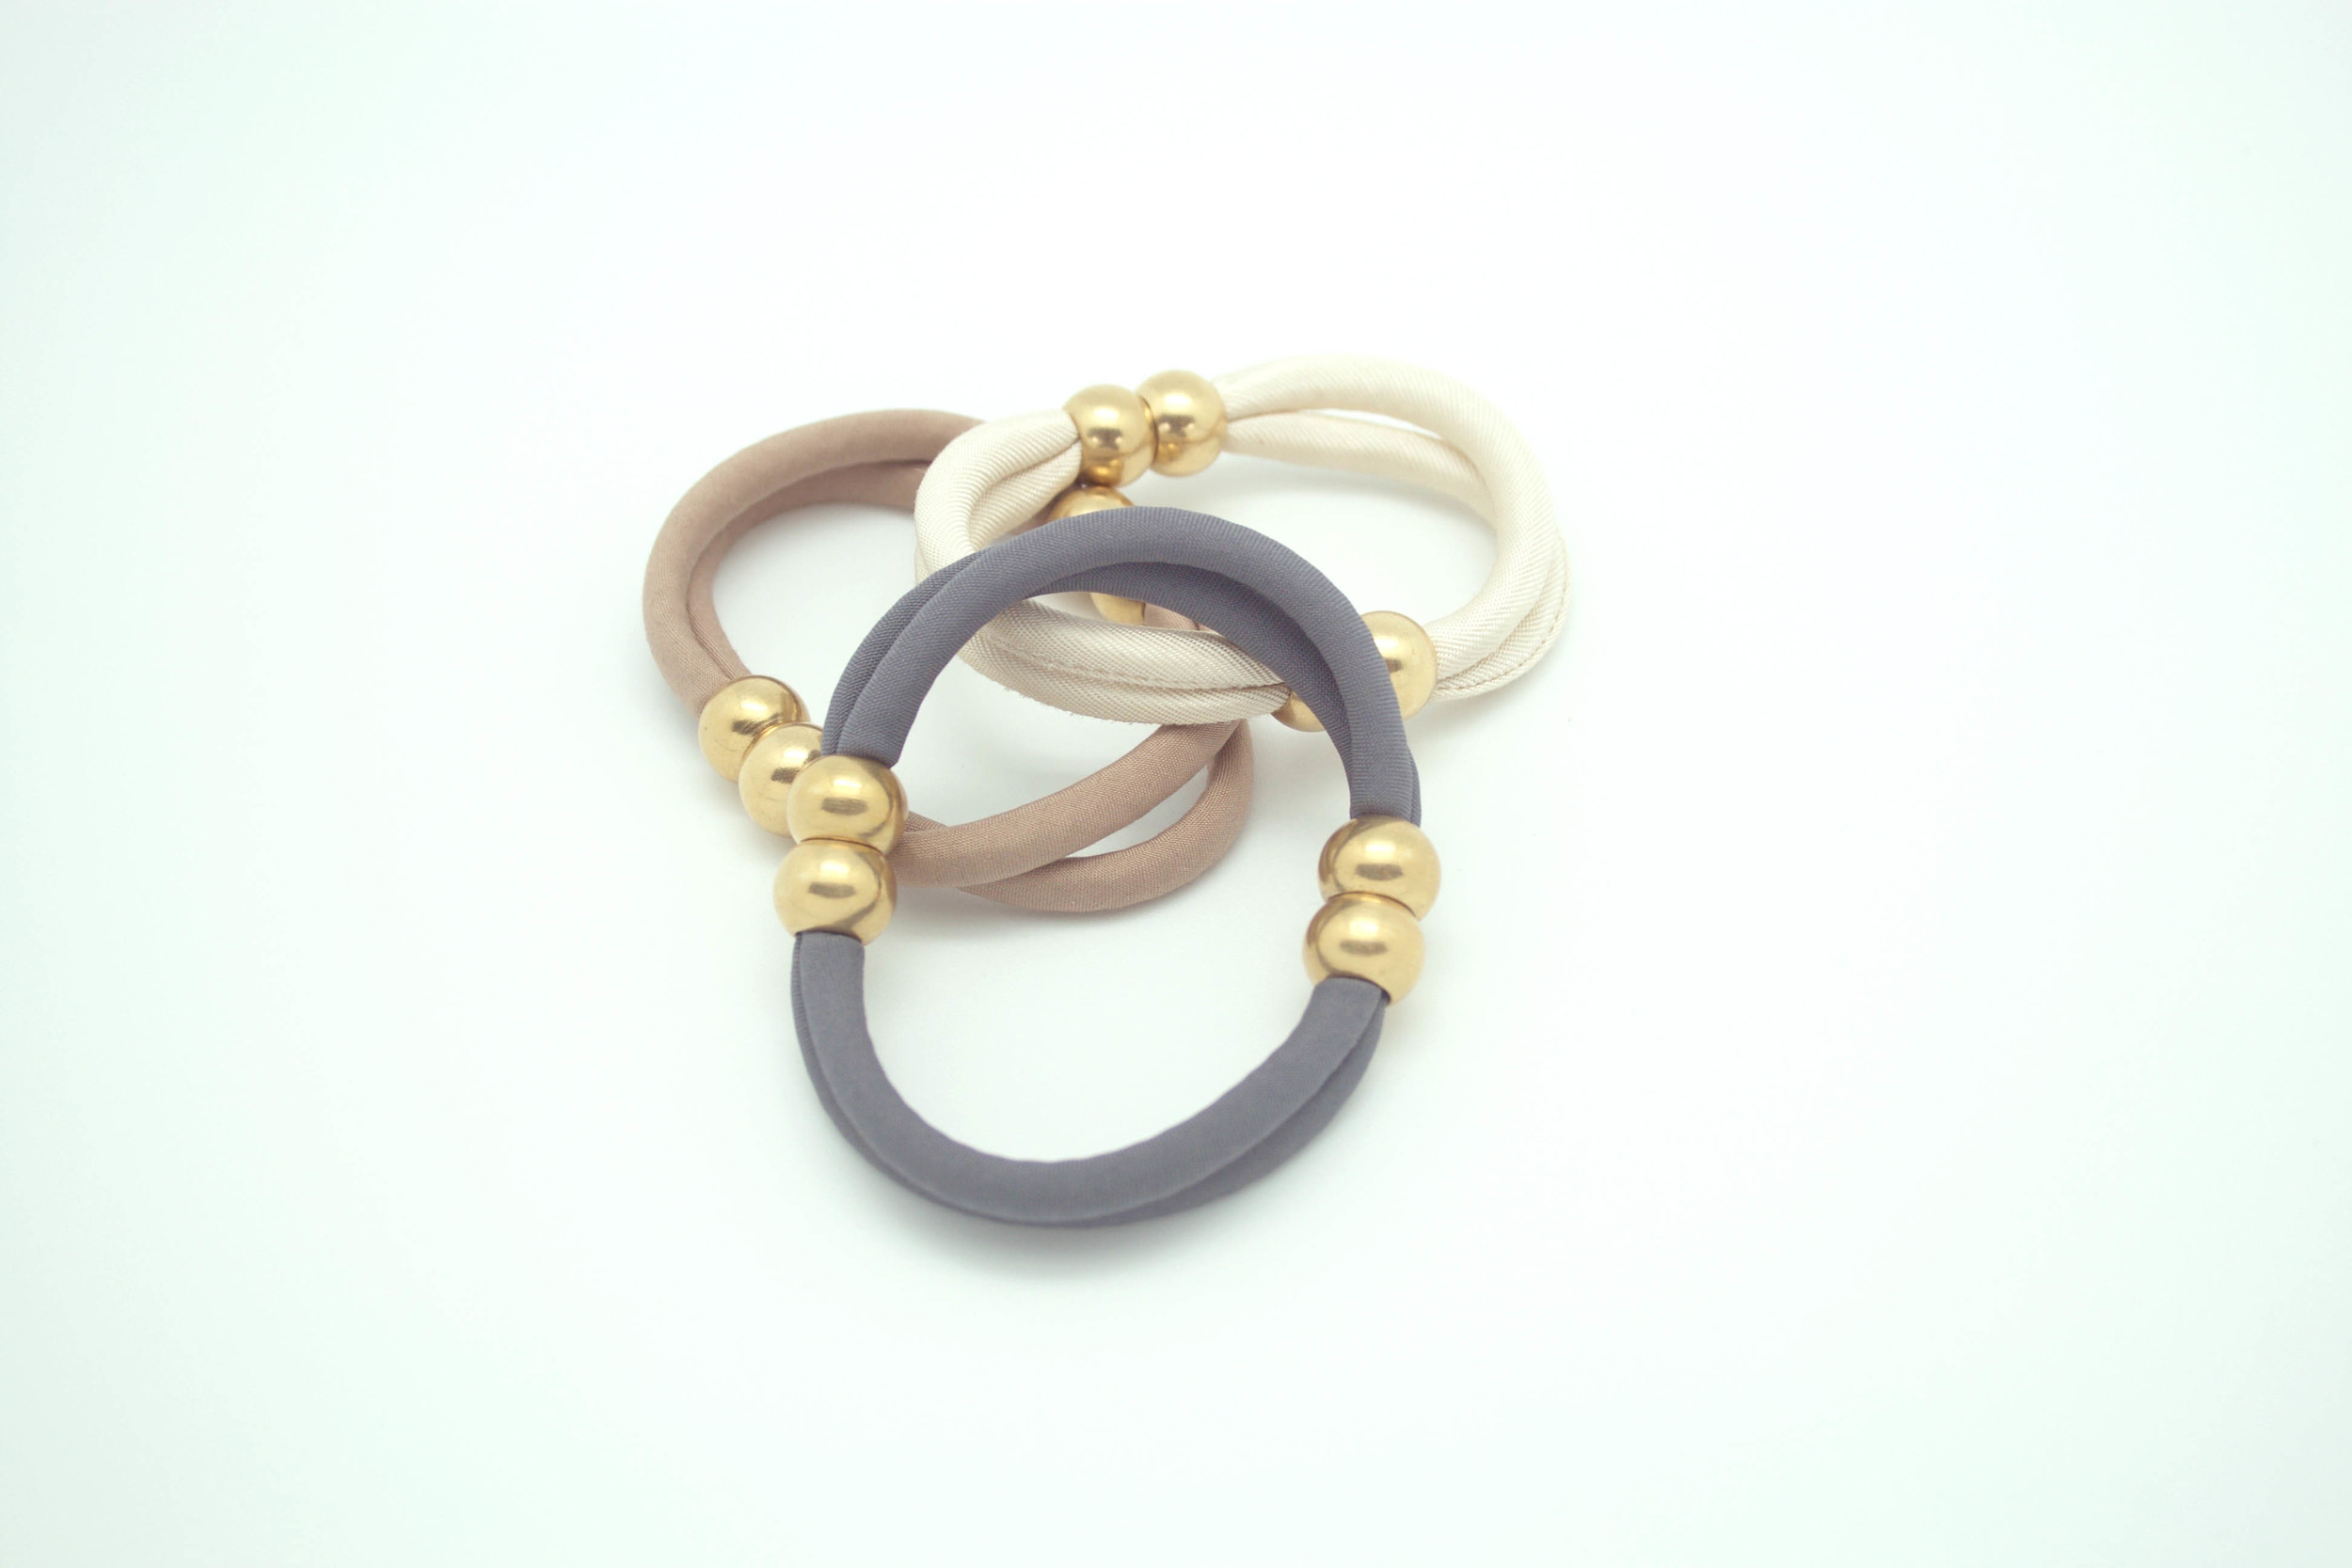 Modular Bracelets: The Vestige Collection